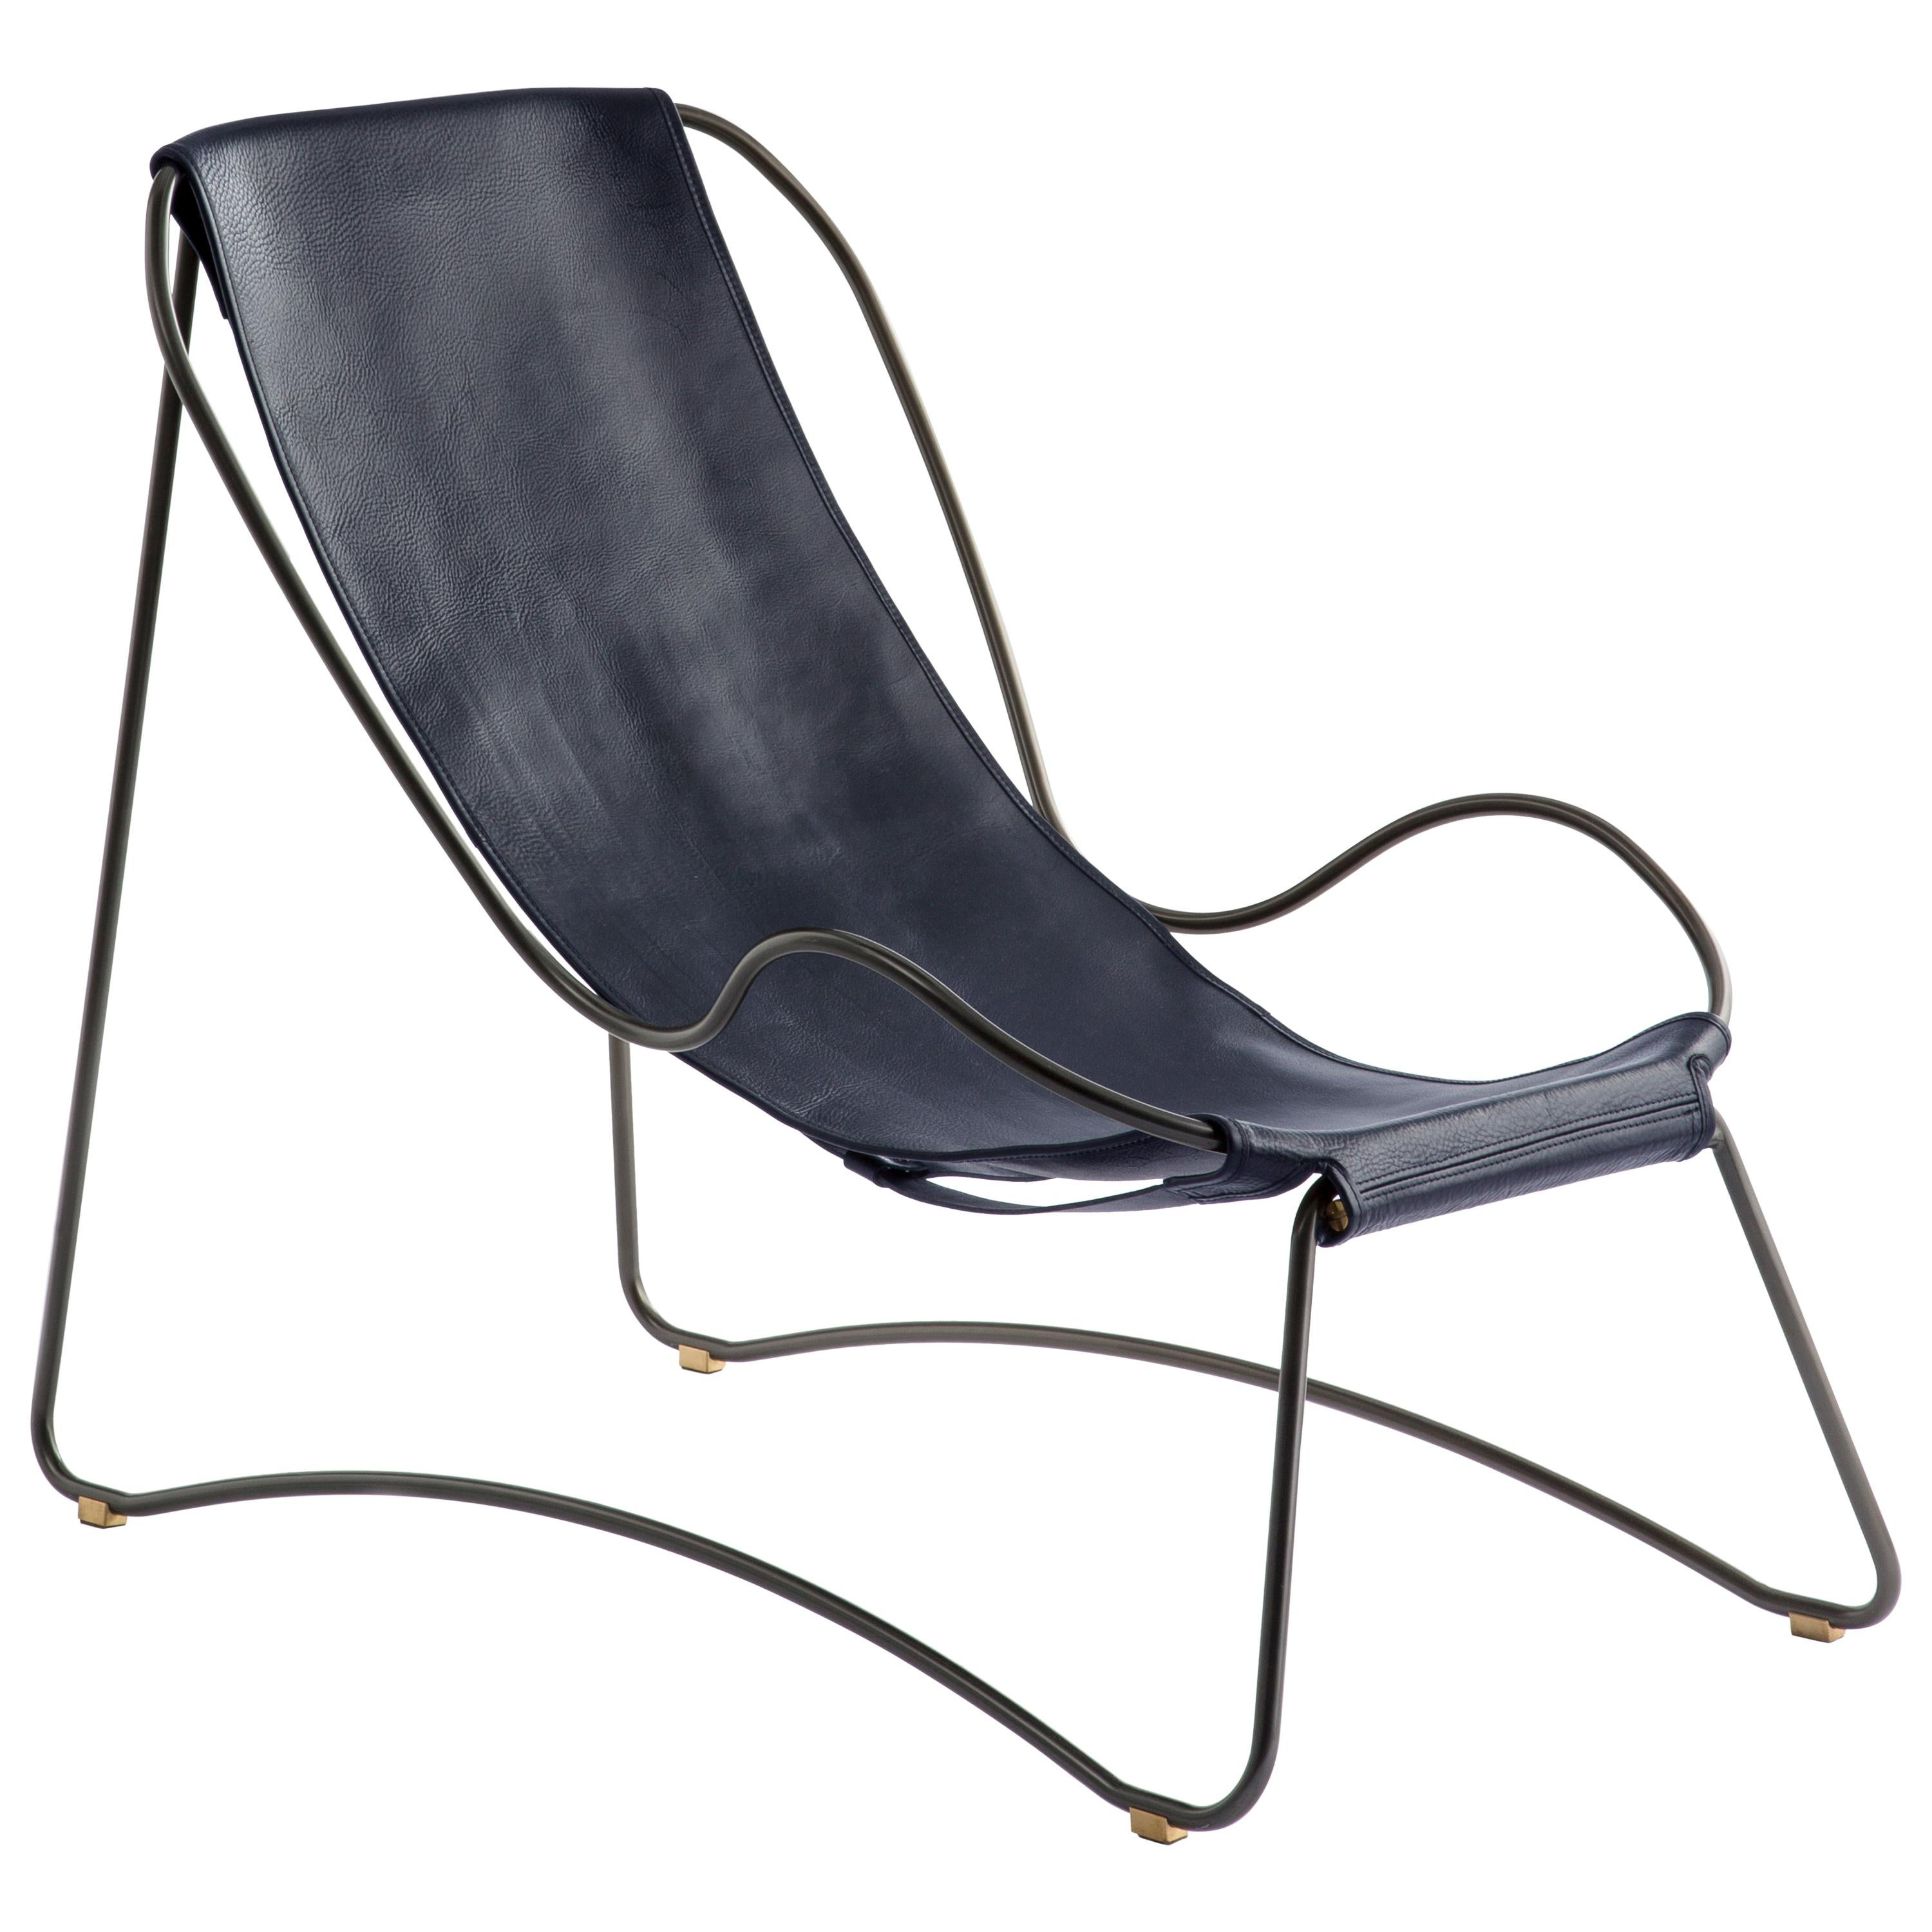 Chaise Longue, Black Smoke Steel and Navy Saddle Leather, Contemporary Style